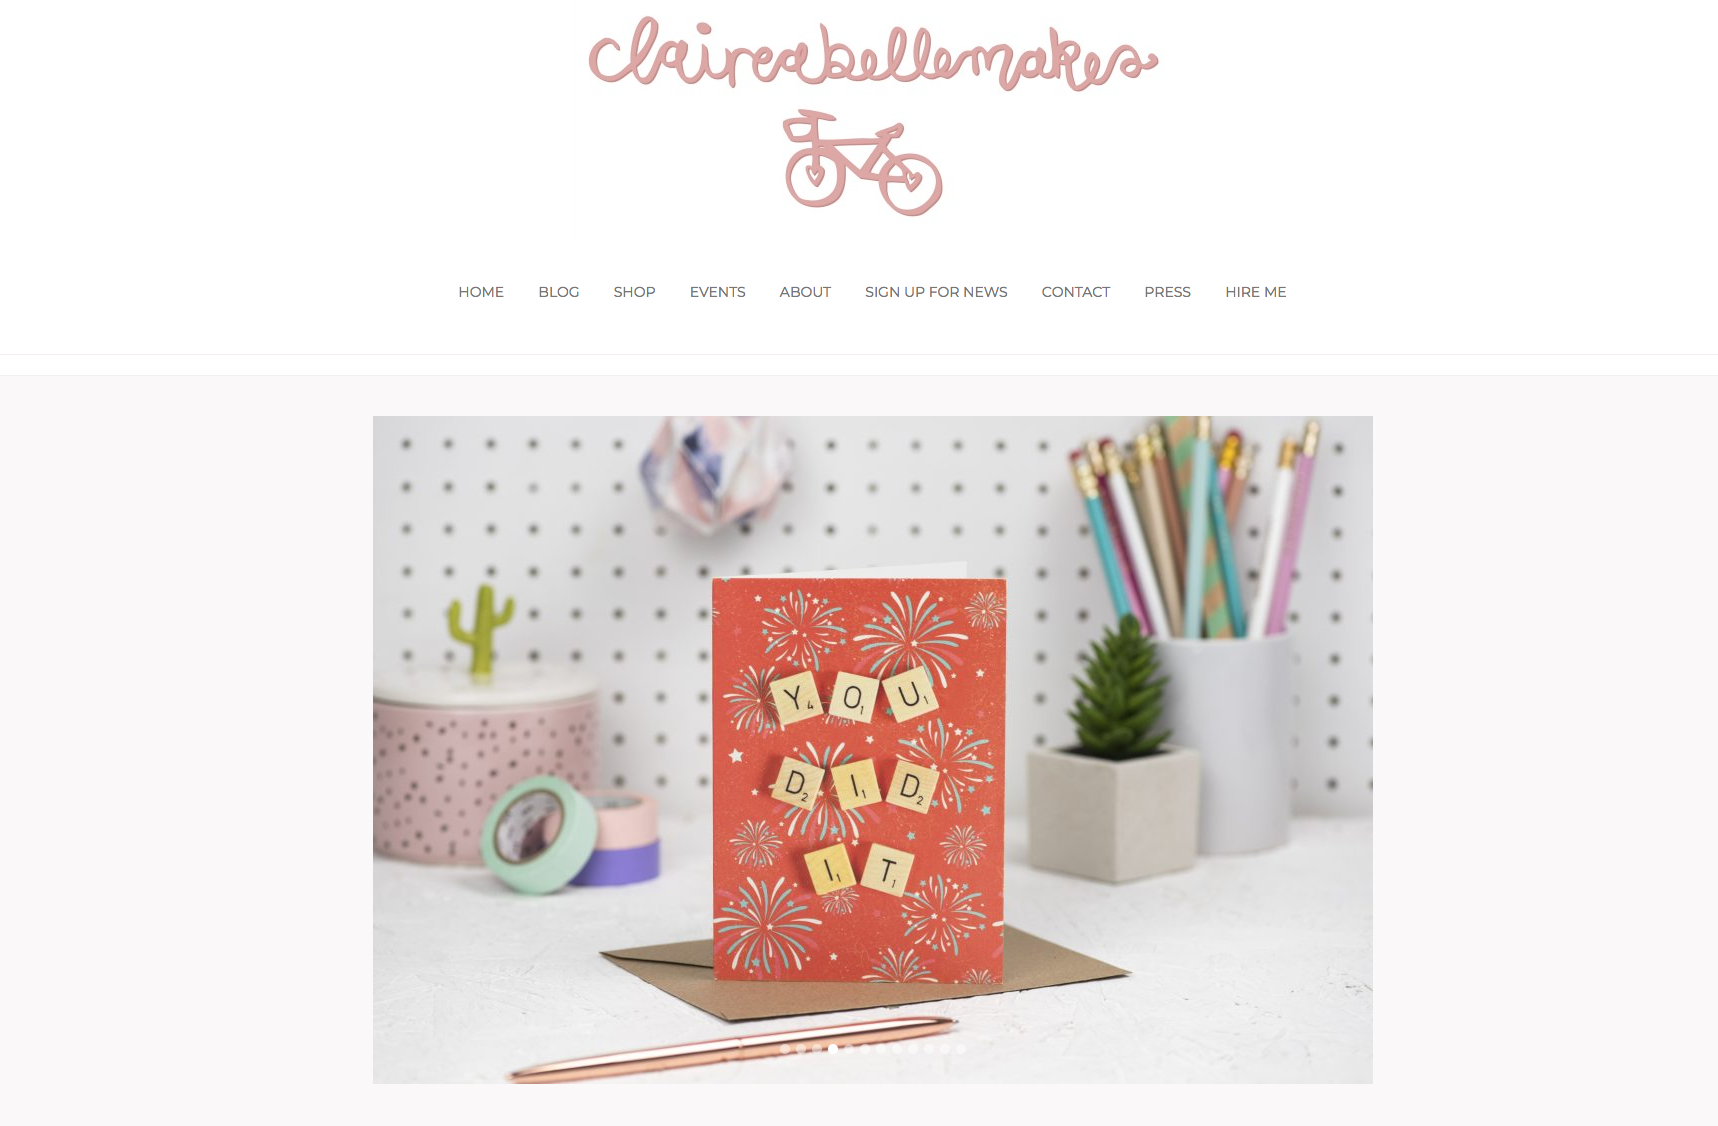 DIY Craft Blogs: 25 Top Craft Blogs For Crafty Business Ideas